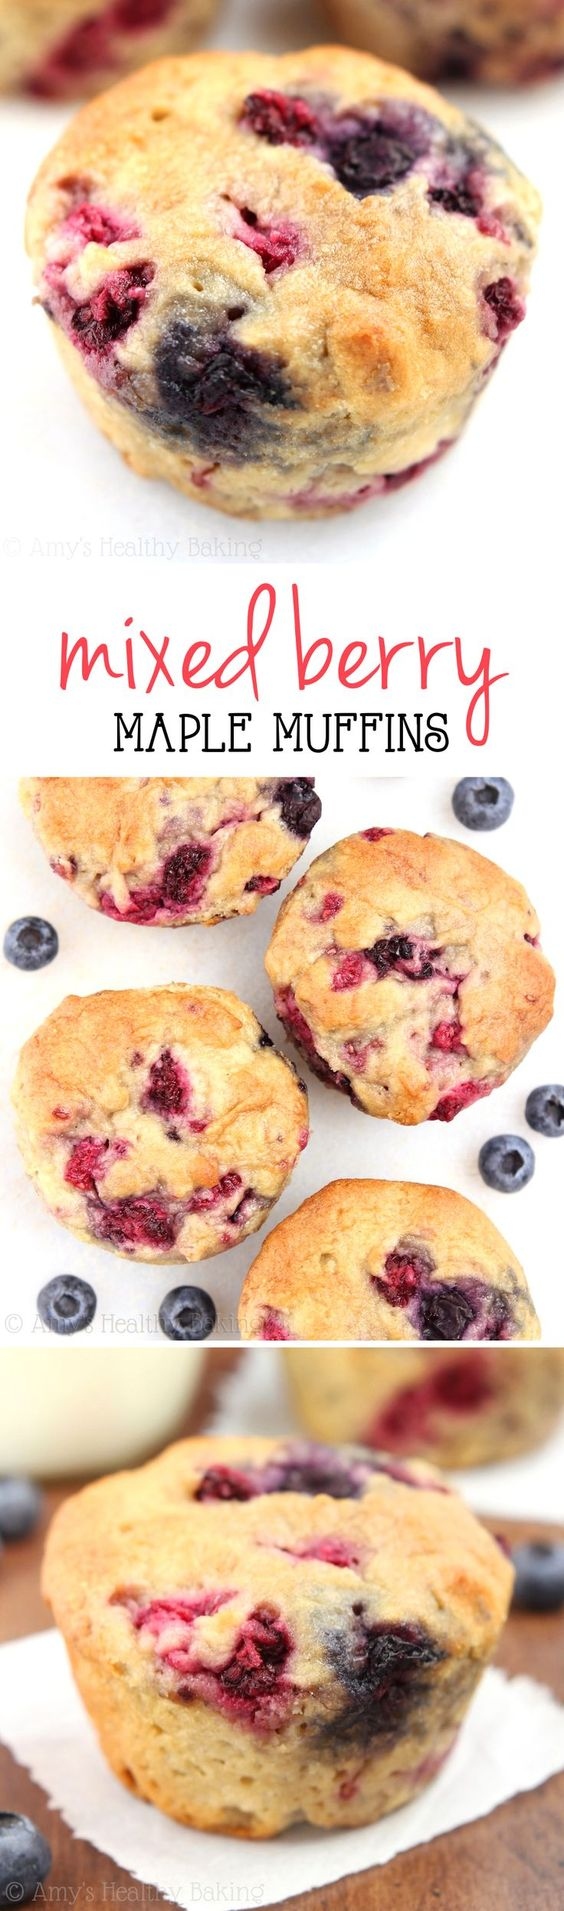 Maple Mixed Berry Muffins -- these healthy, clean-eating muffins practically taste like cupcakes! Under 150 calories too! #eatclean #muffin